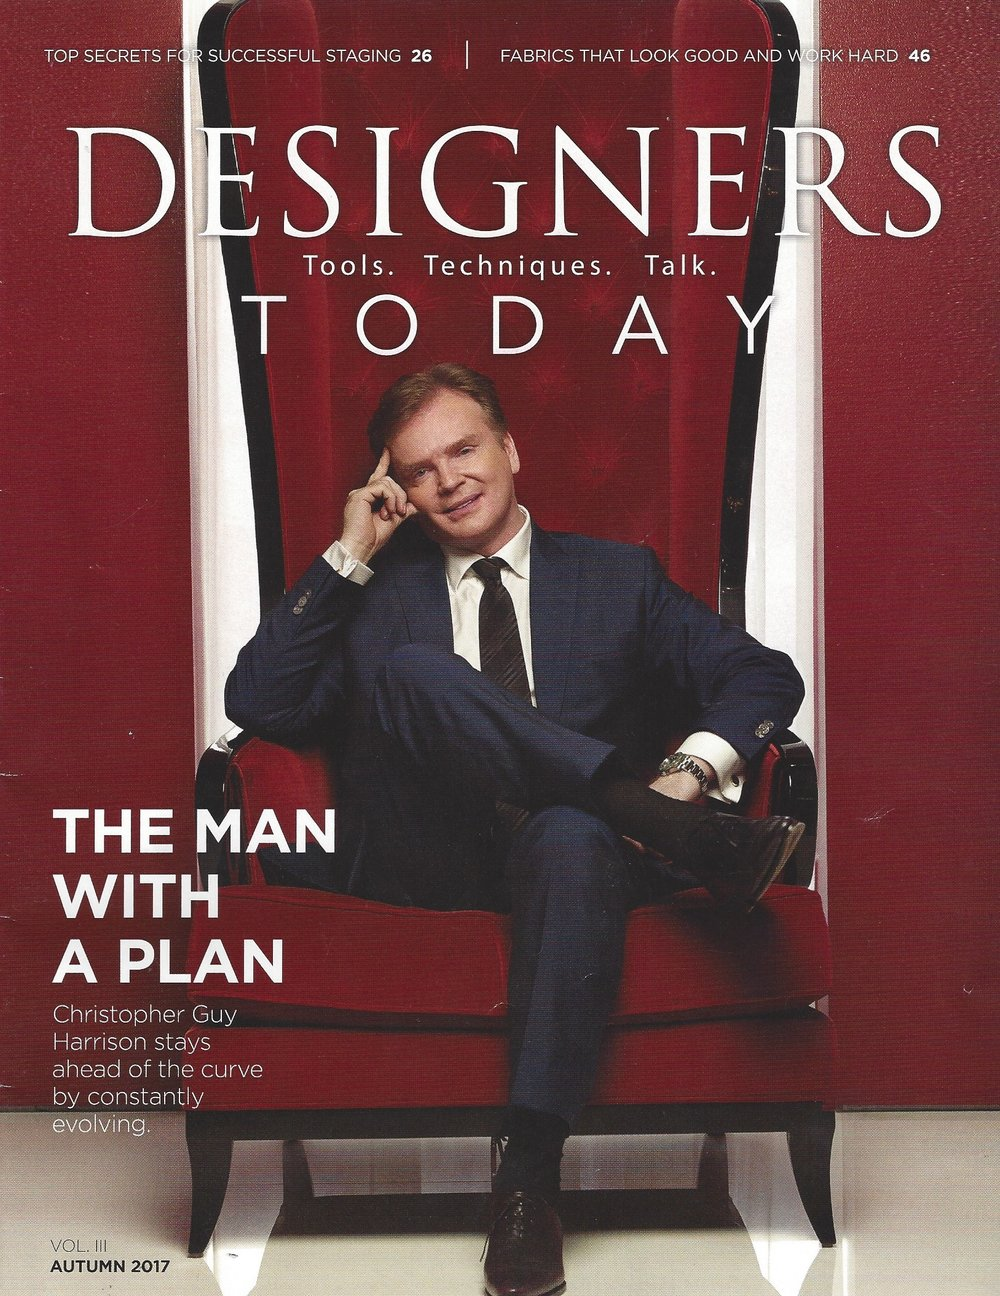 Designer's today cover.jpg